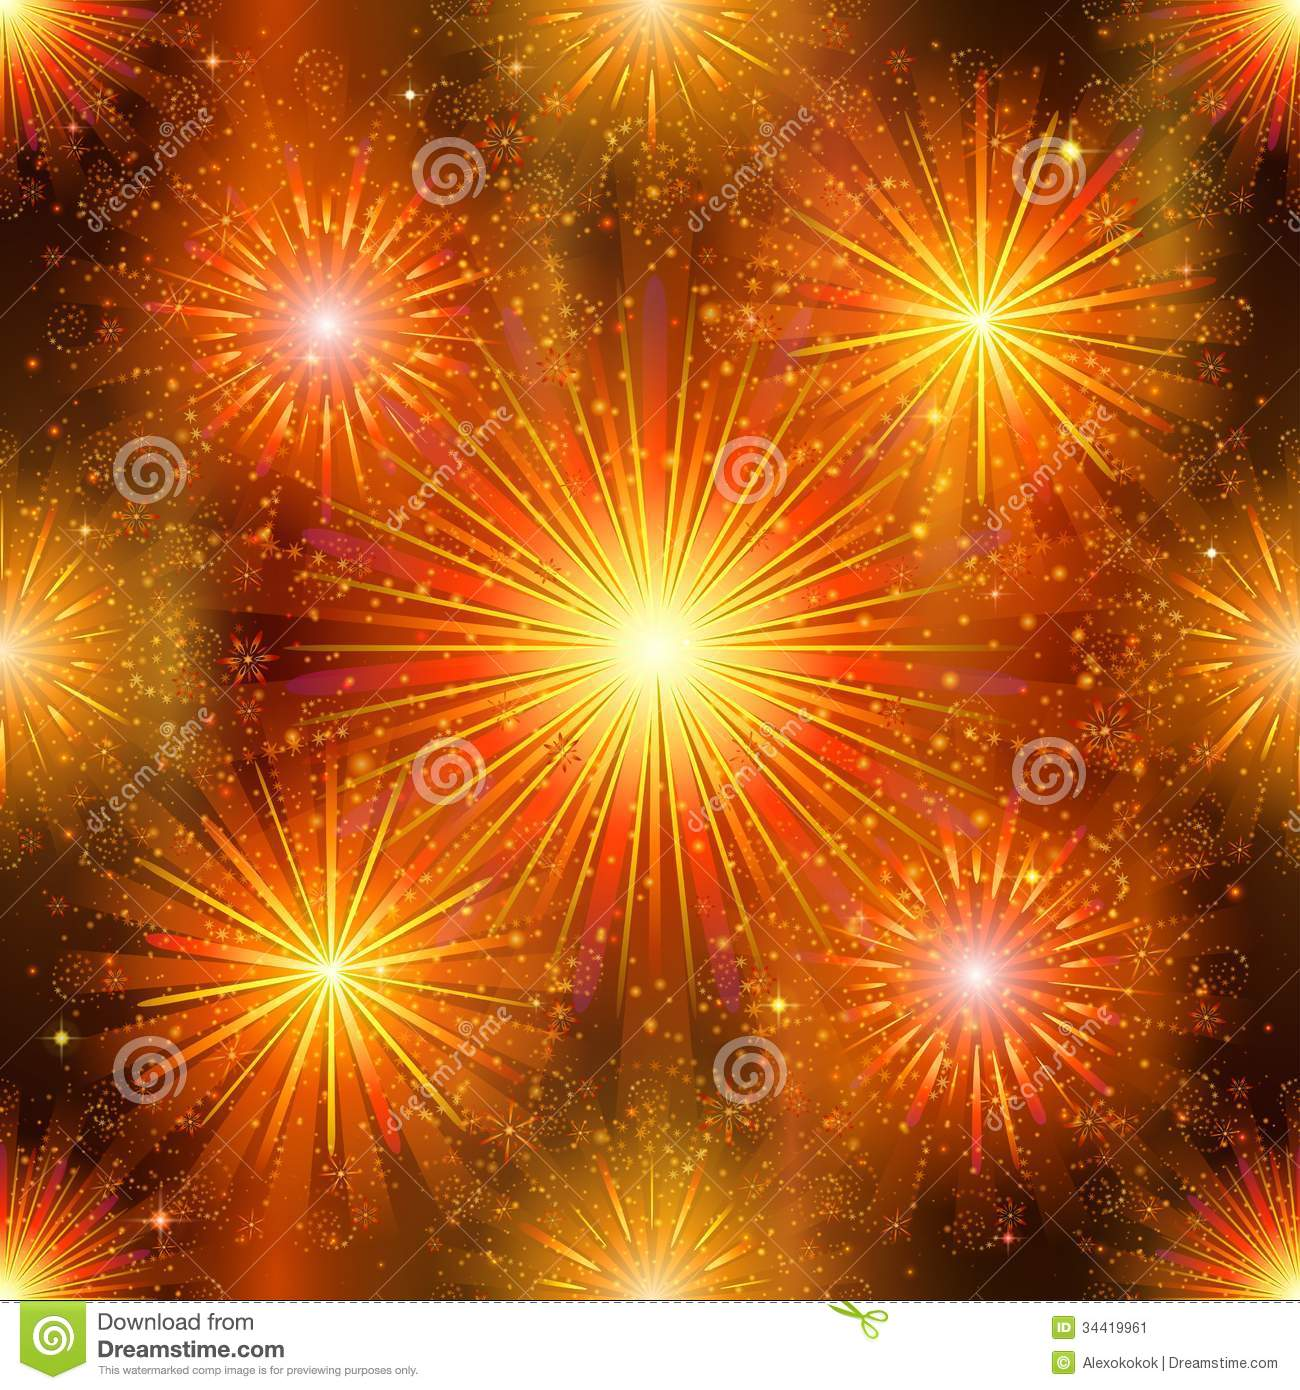 Birthday Background Pink Fireworks, Seamless Stock Vector. Image Of Holiday, Orange